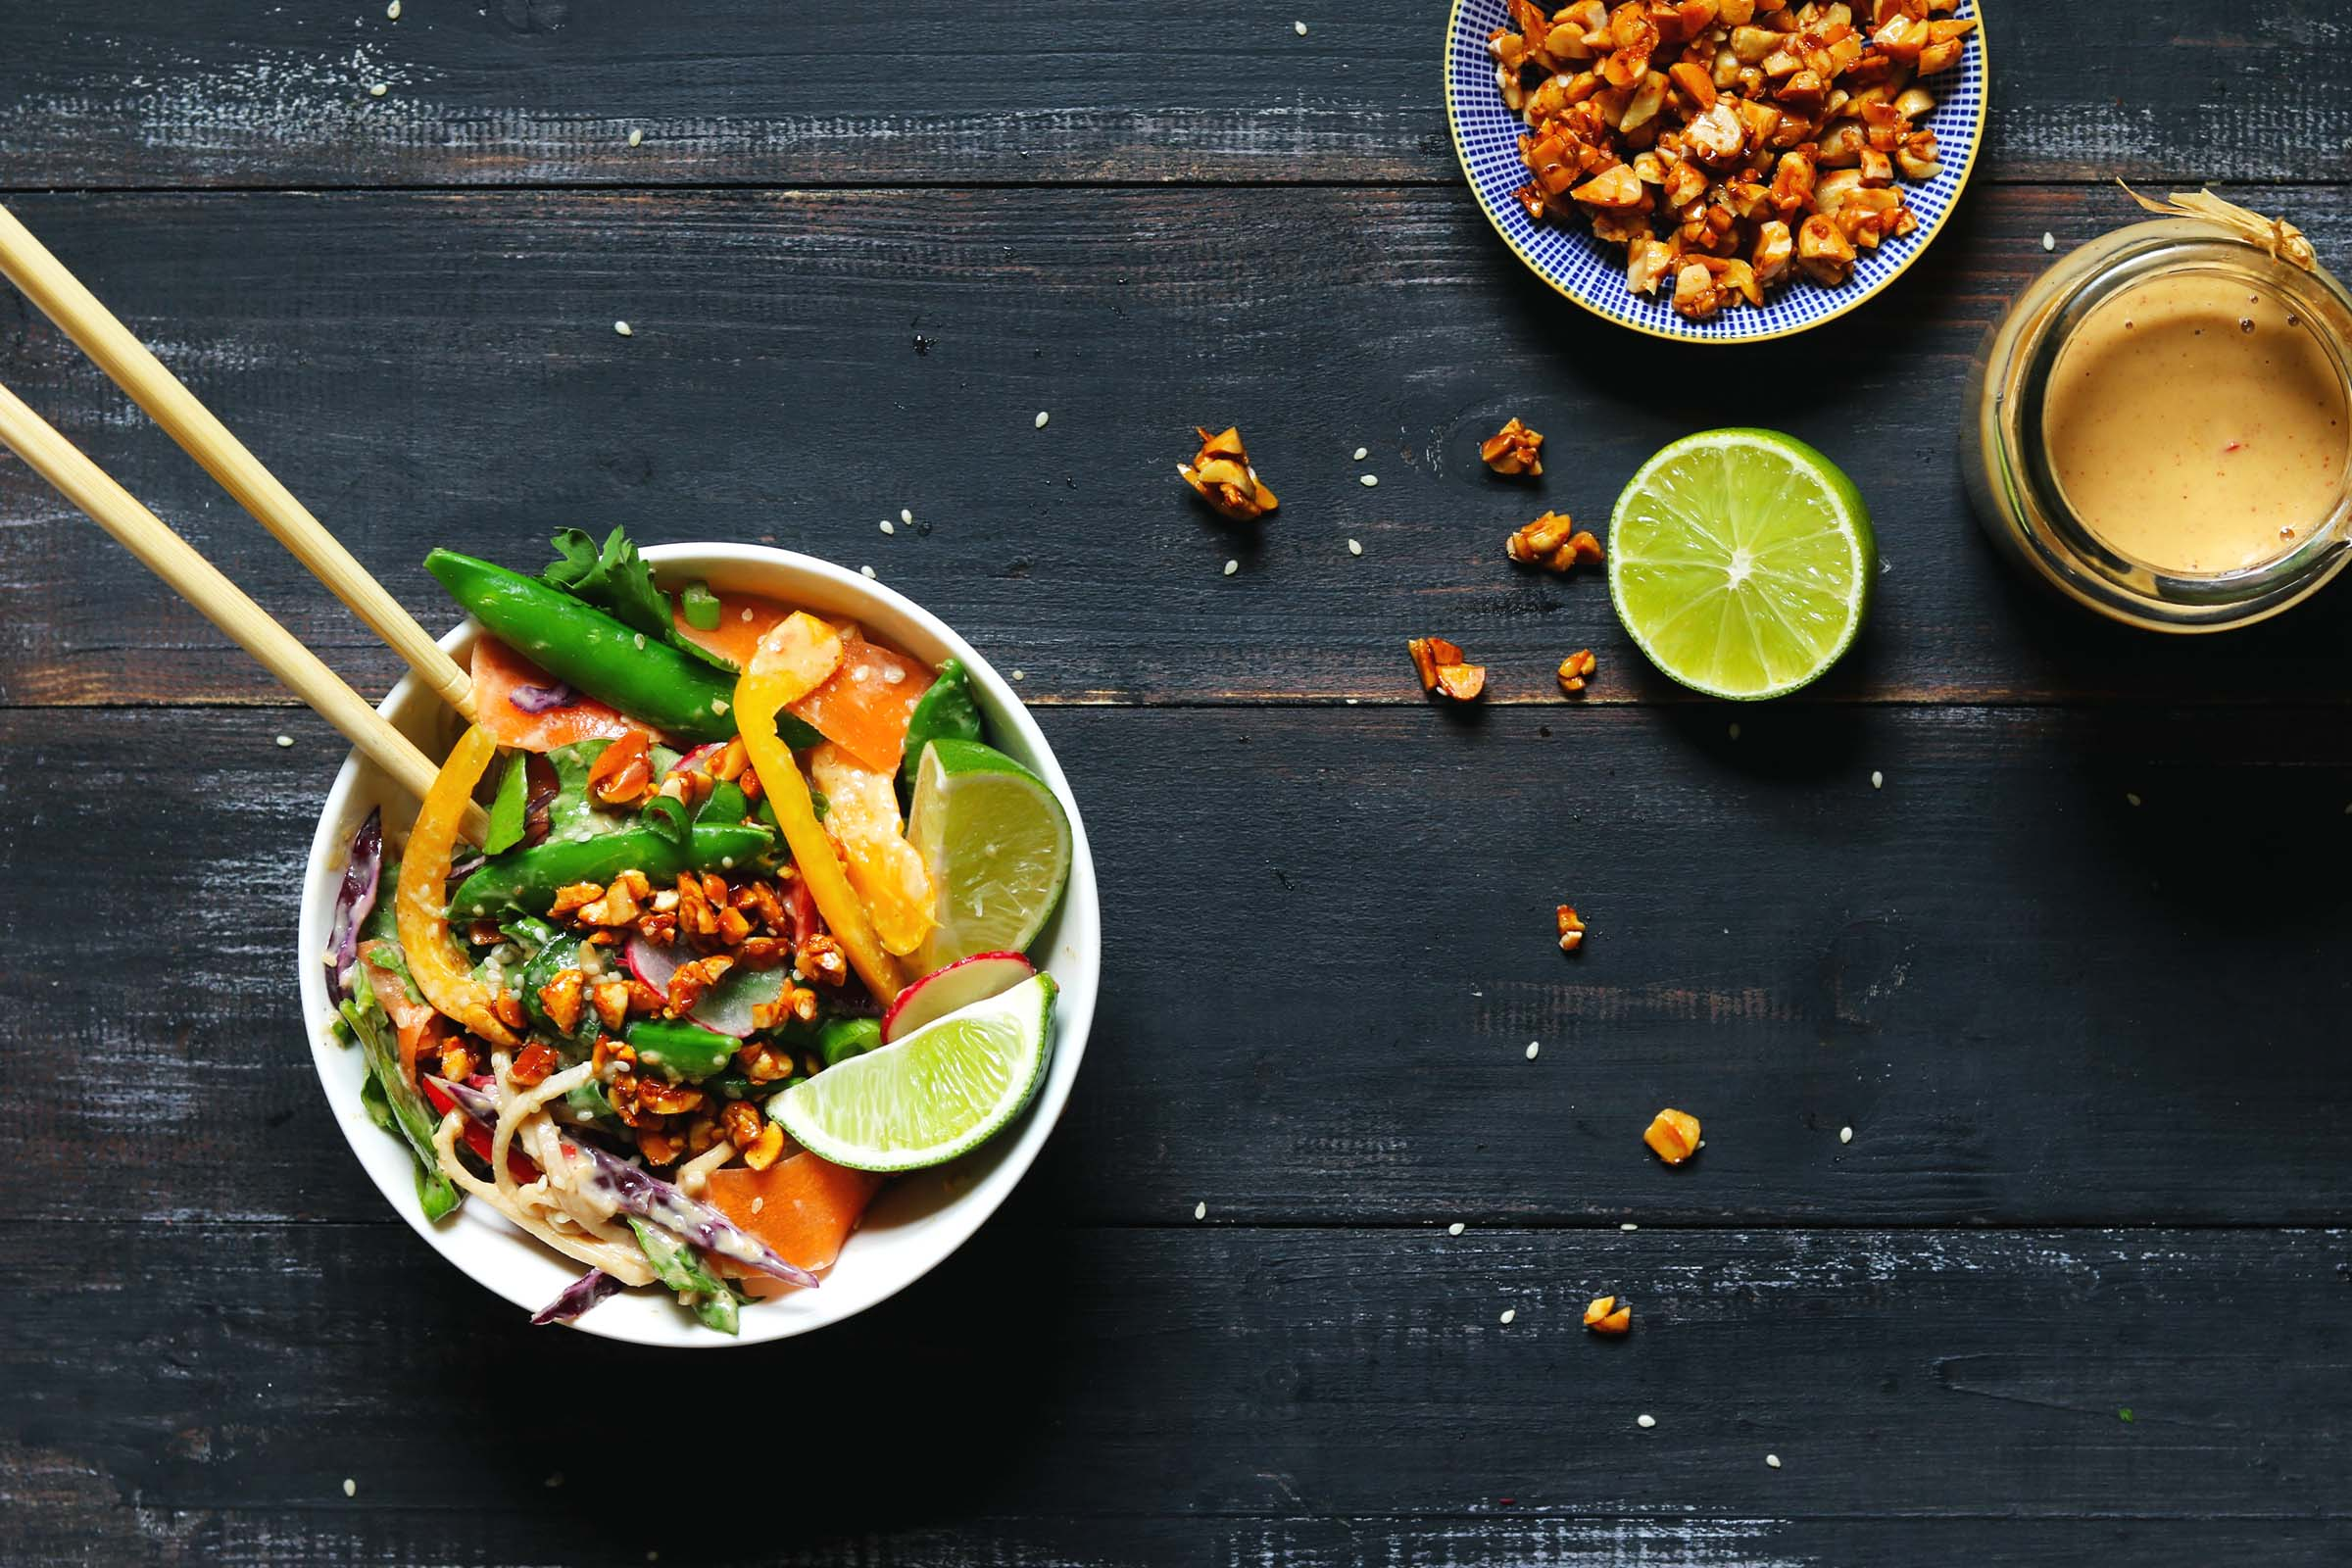 Veggie Noodle Salad with Peanut Dressing